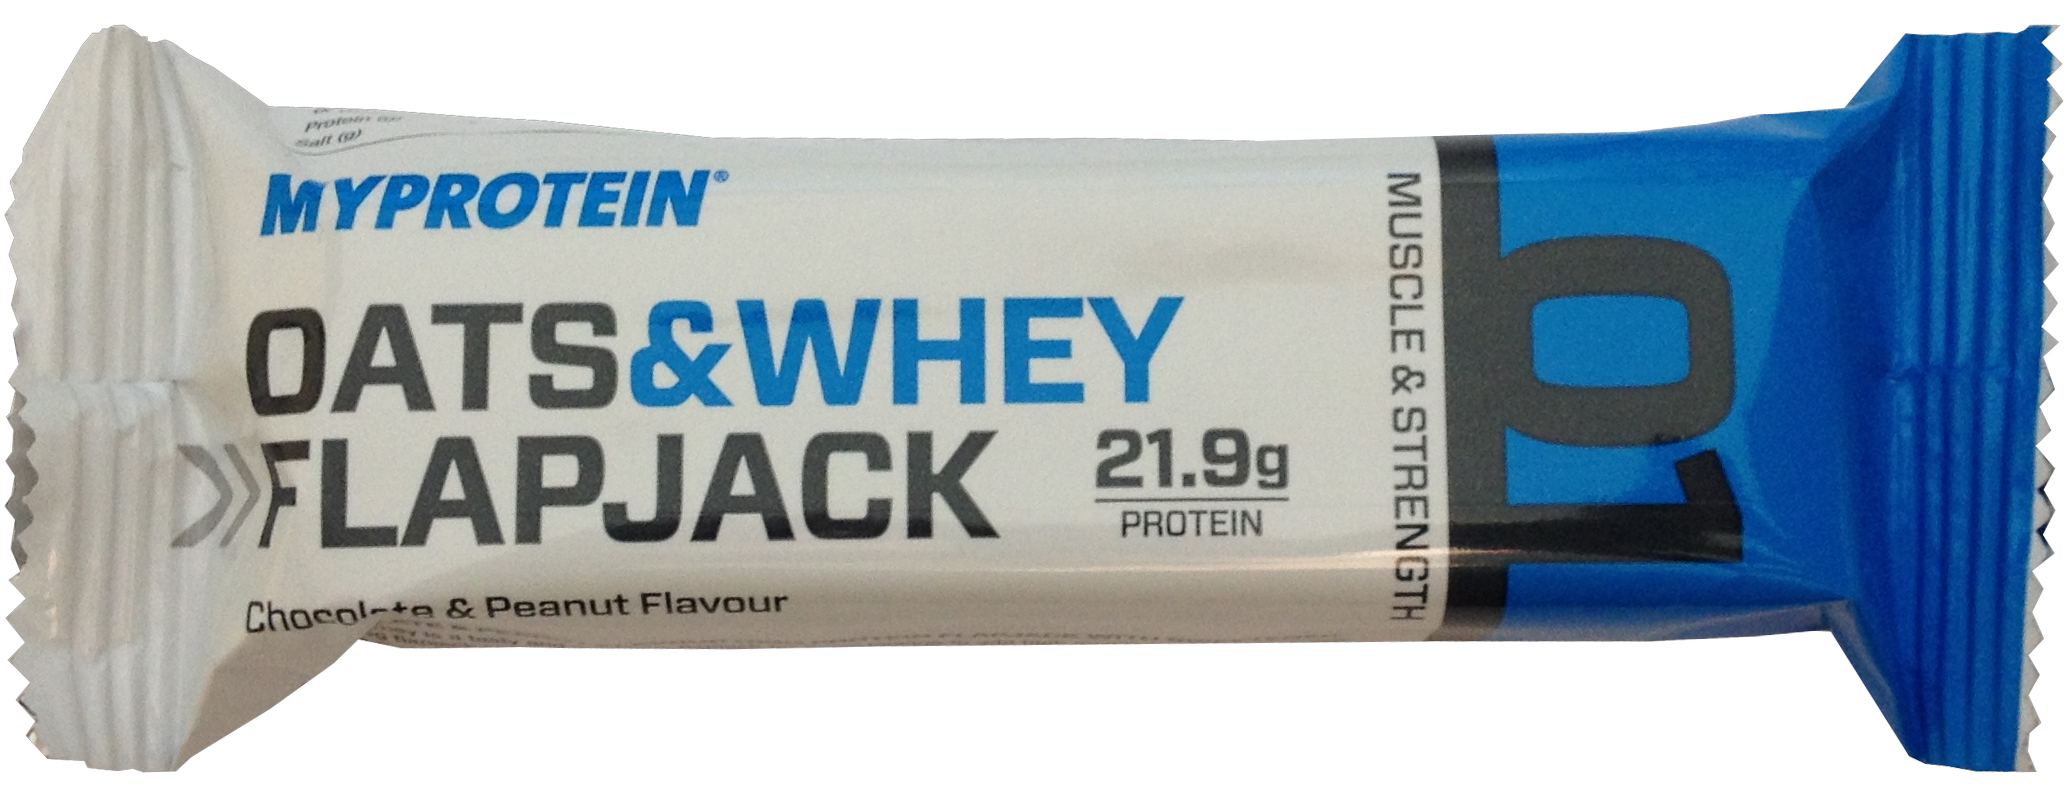 Myprotein - Oats and Whey Flapjack